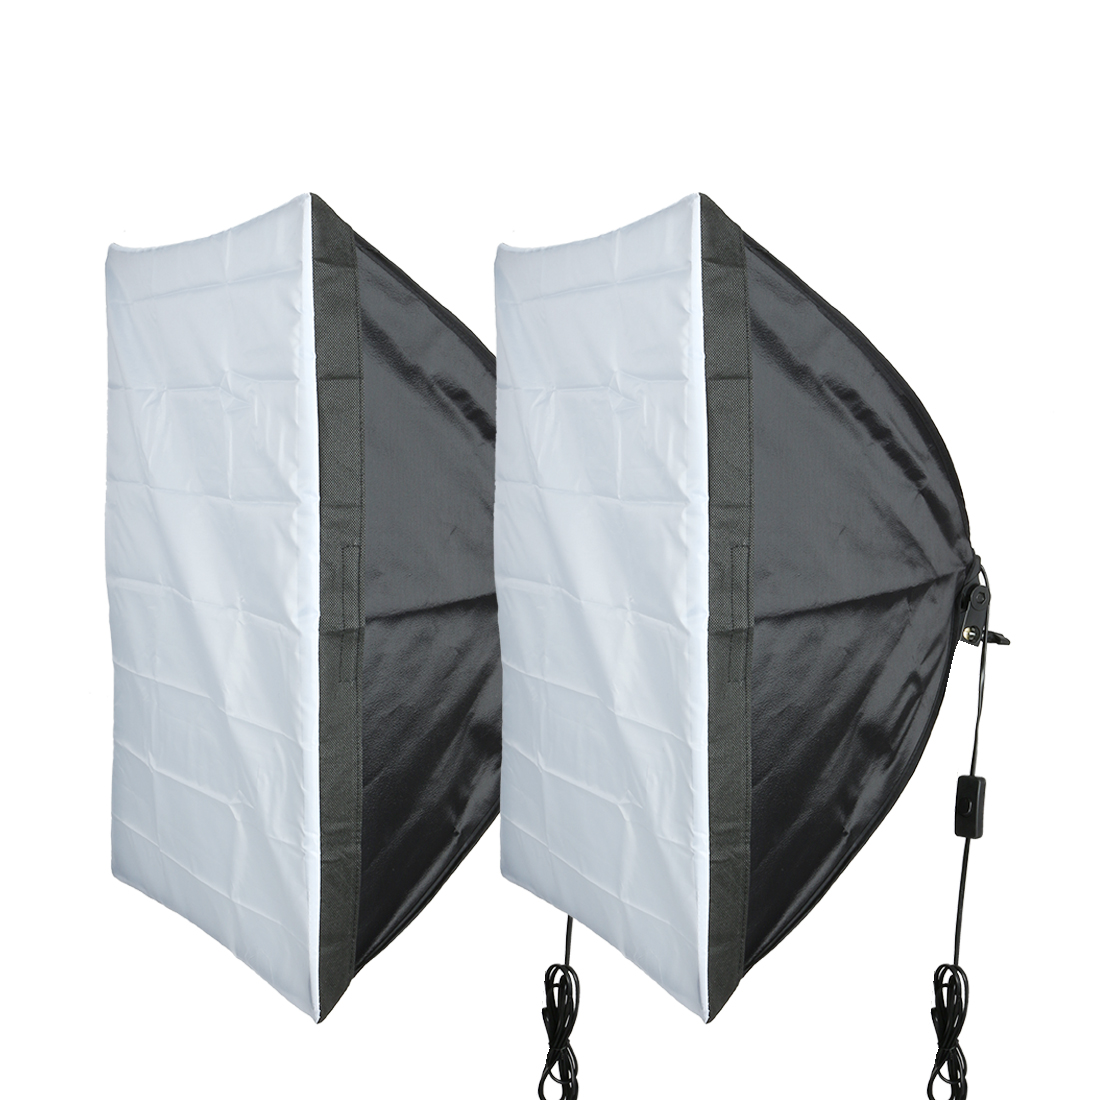 2Pcs US Plug 50cmx70cm Single Flash Umbrella Softbox for Photo Video Studio